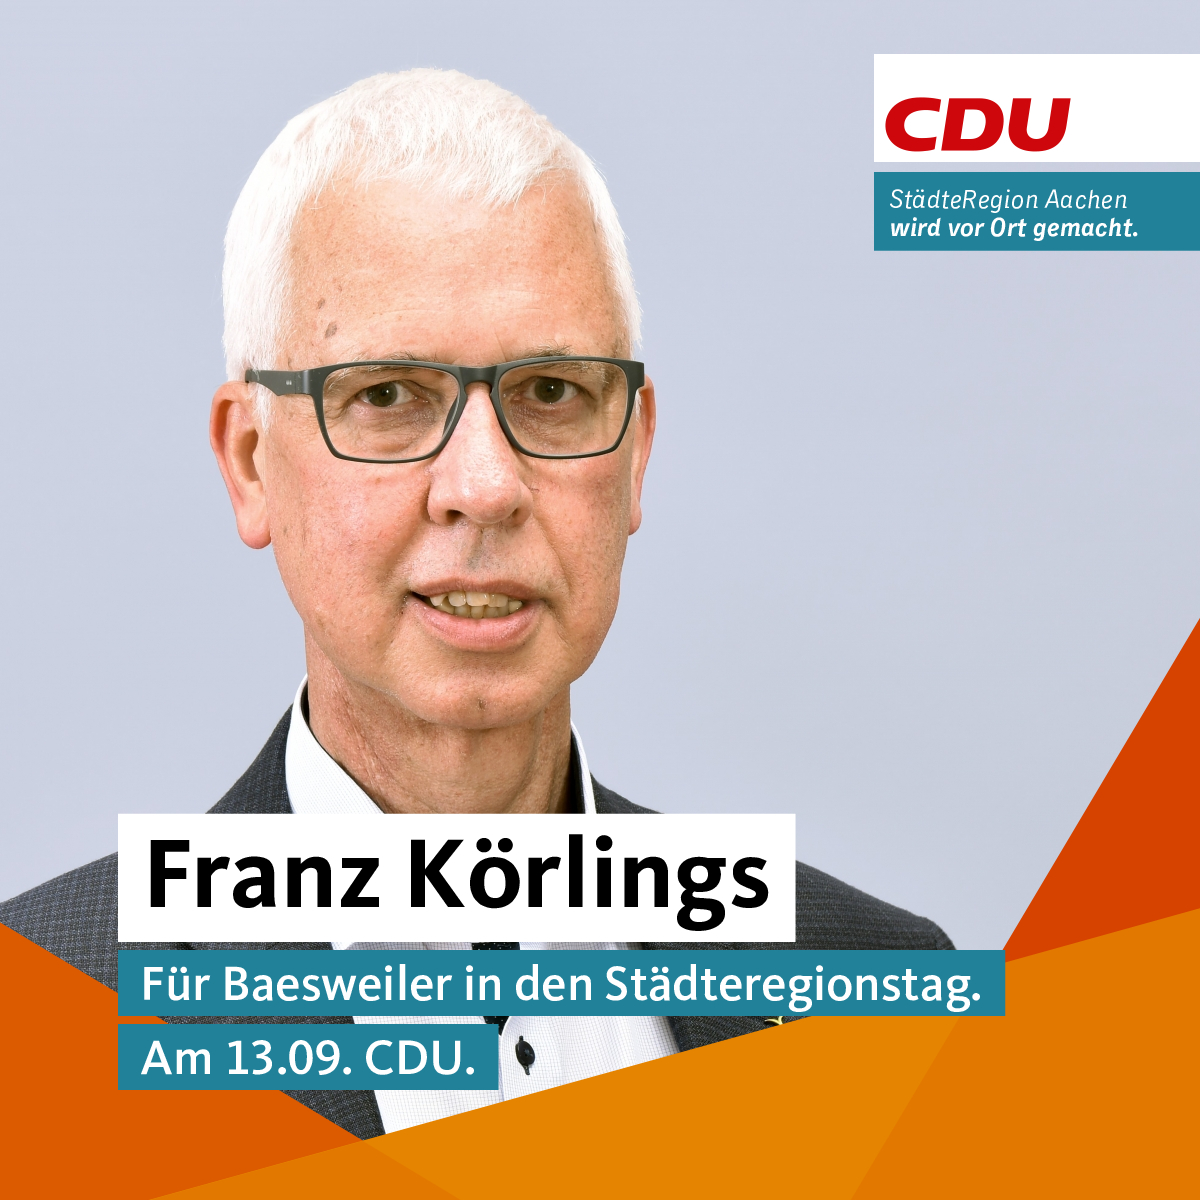 fb 01 Franz Körlings